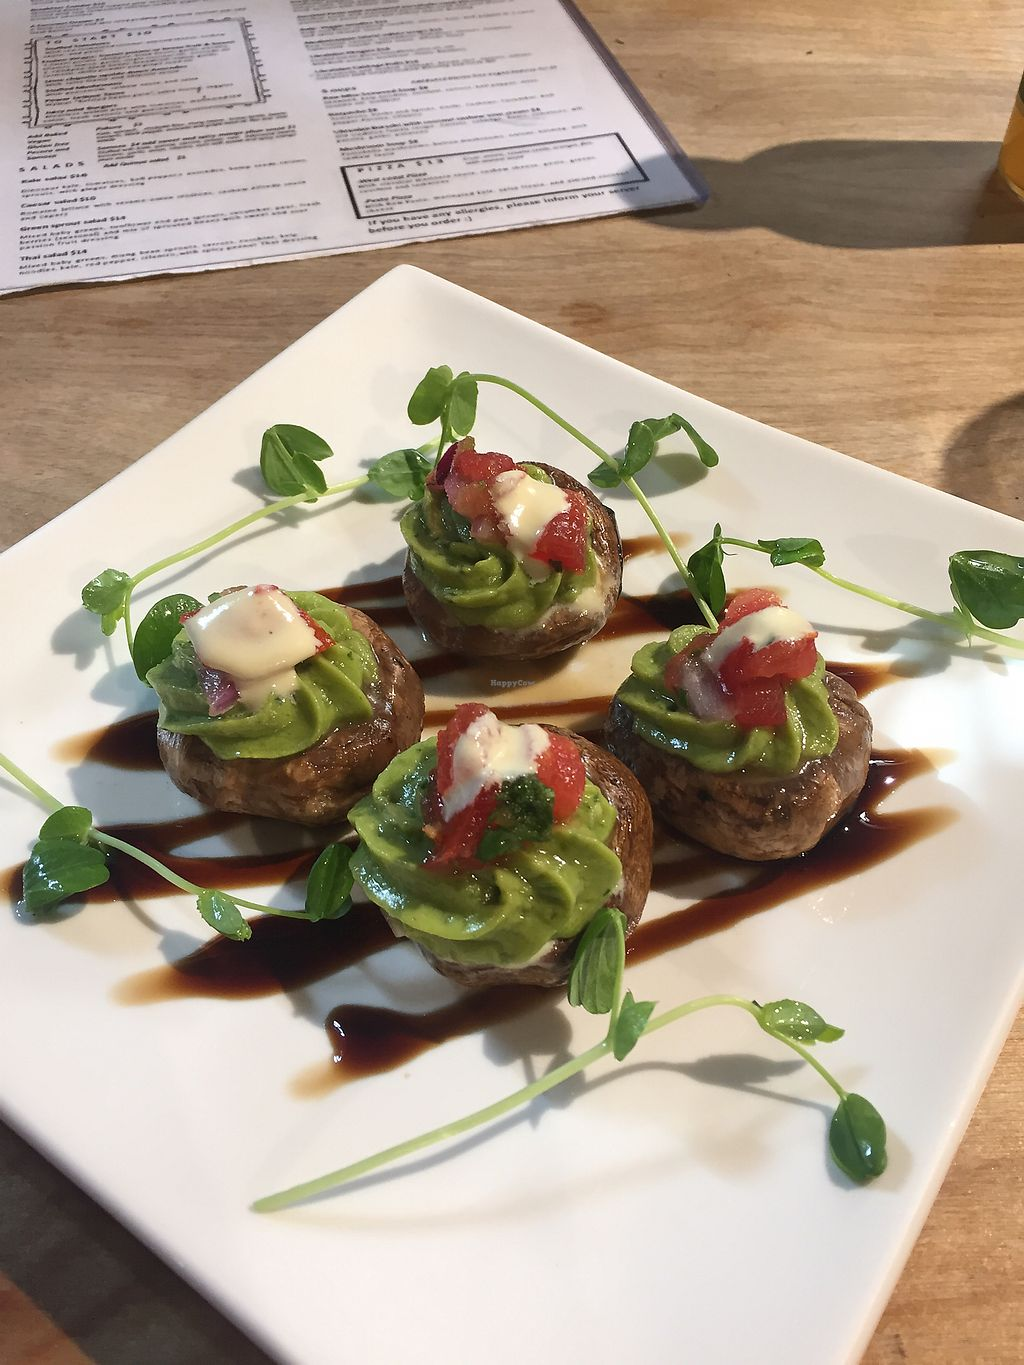 """Photo of Indigo Age Cafe  by <a href=""""/members/profile/TheFlyingVegan"""">TheFlyingVegan</a> <br/>Stuffed mushroom starter <br/> July 28, 2017  - <a href='/contact/abuse/image/56700/285705'>Report</a>"""